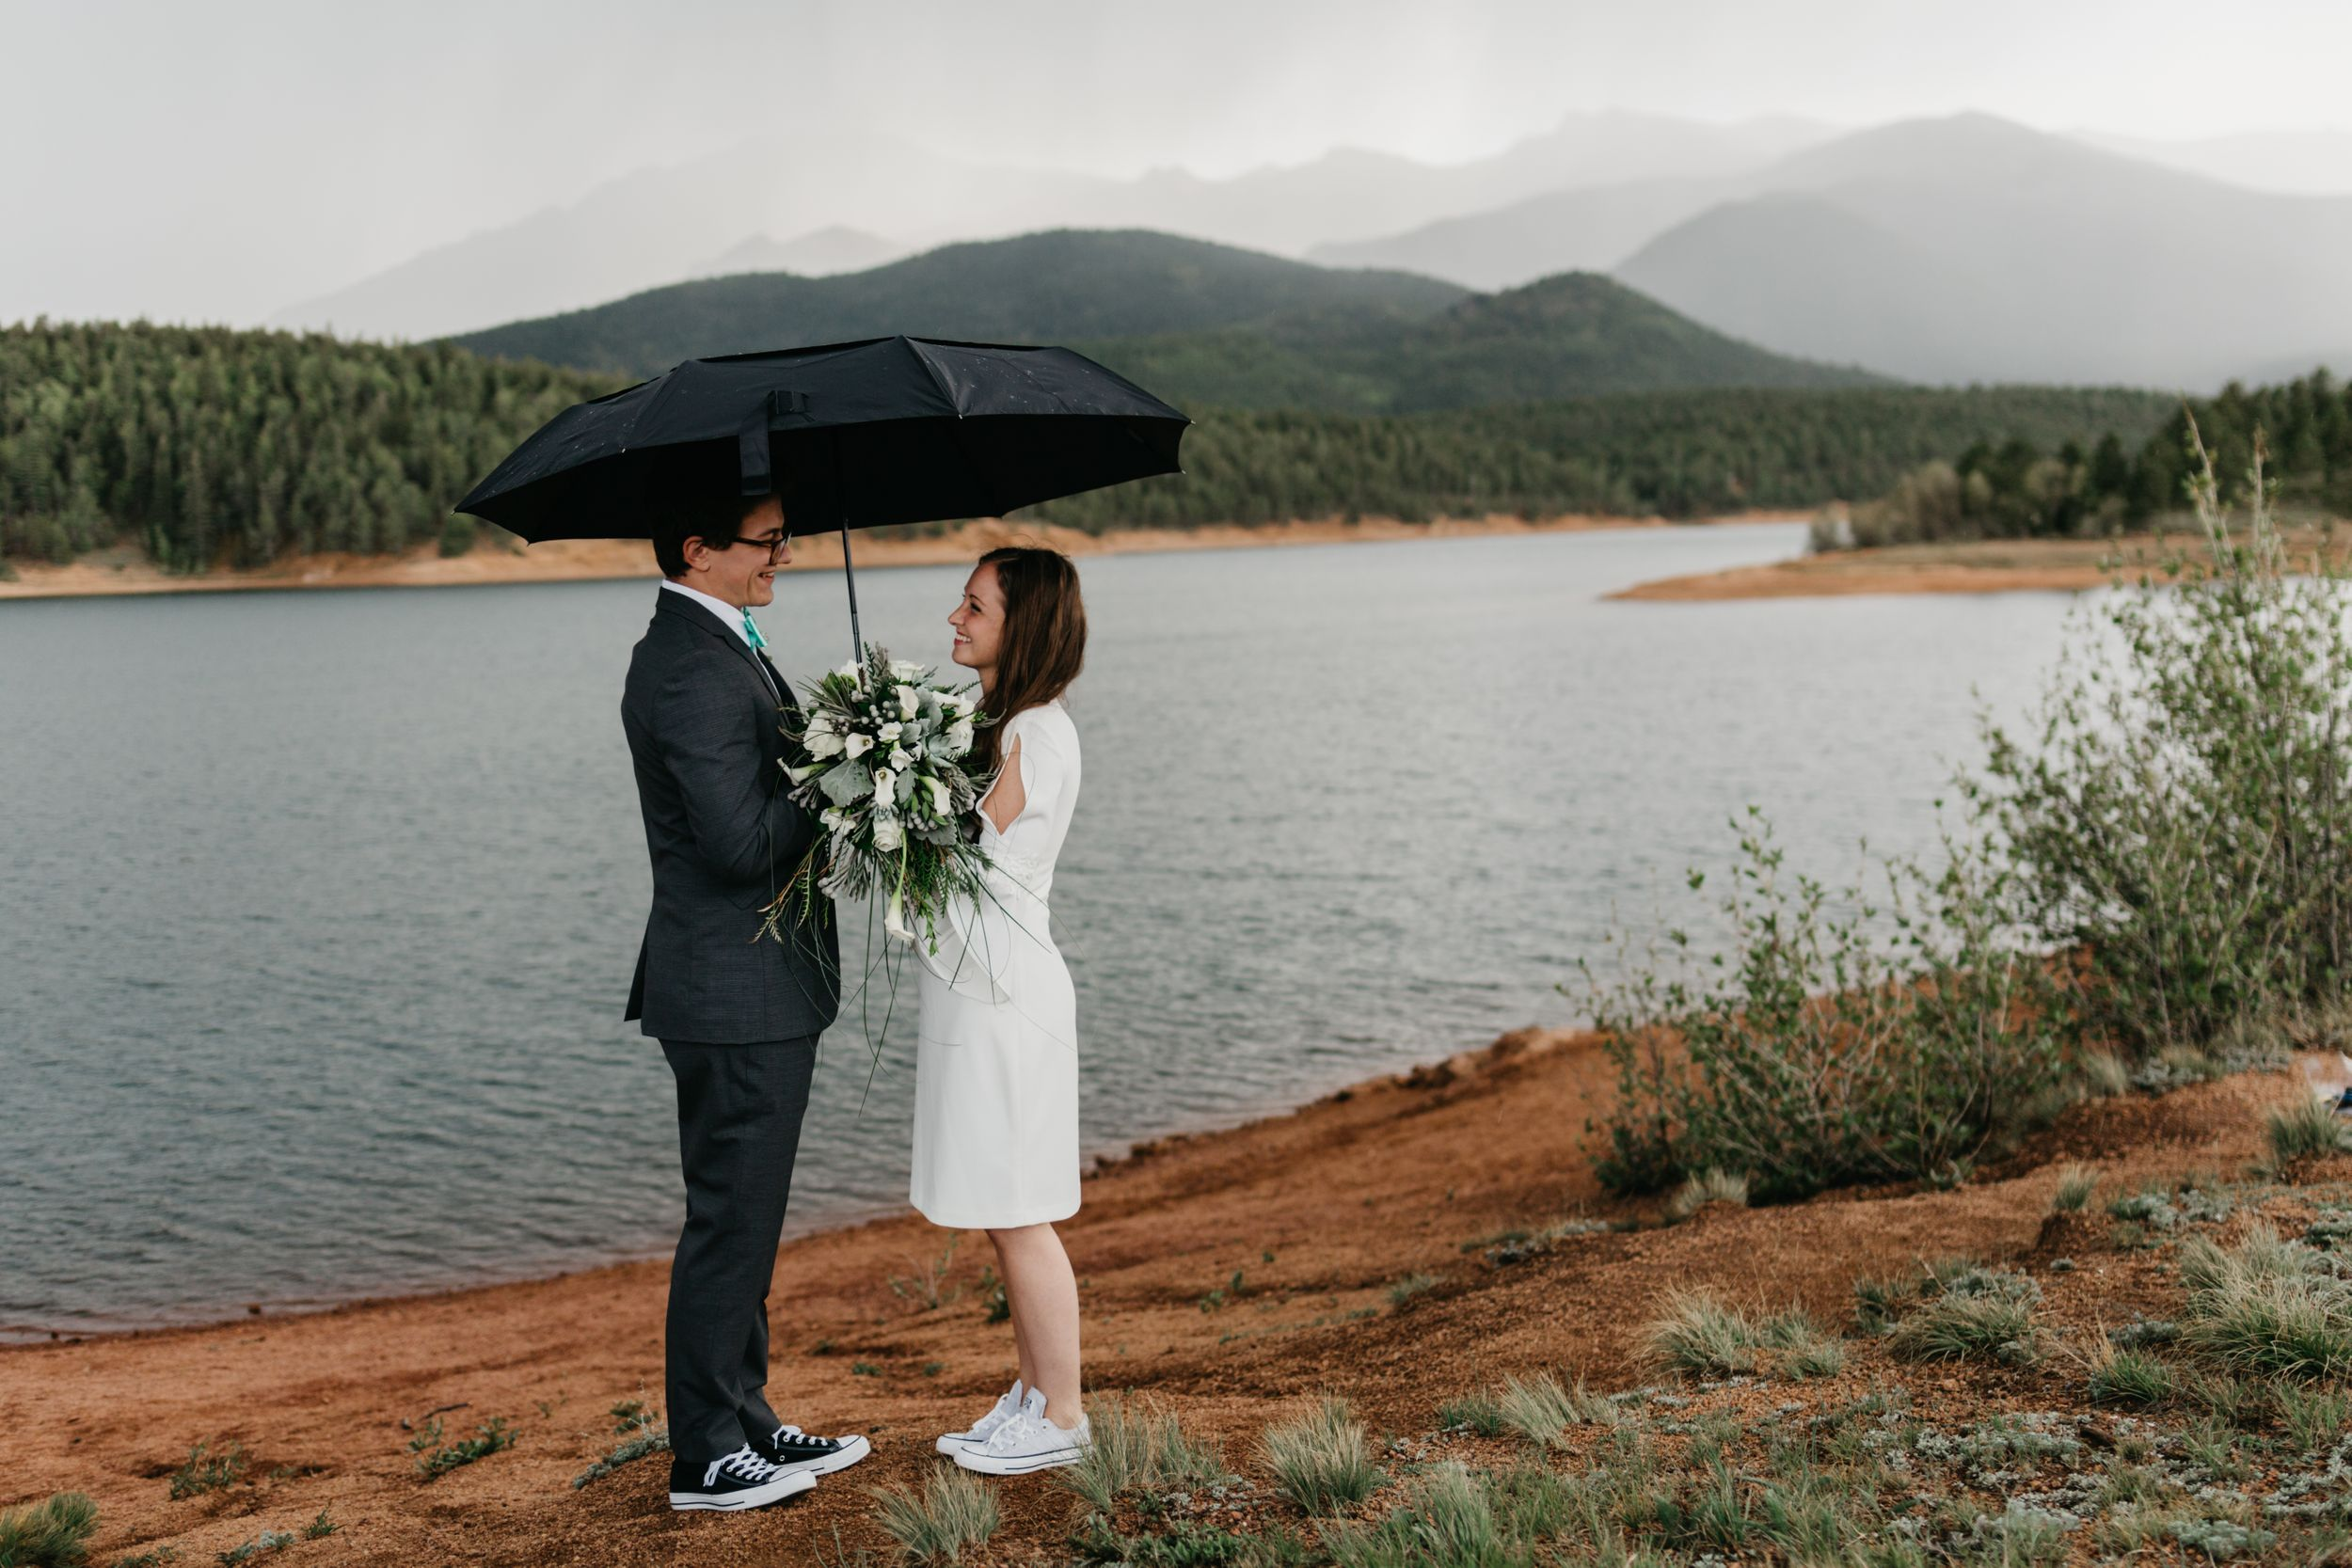 wedding, colorado, Mountain, rain, umbrella, small intimate wedding, inspiration, best of Colorado